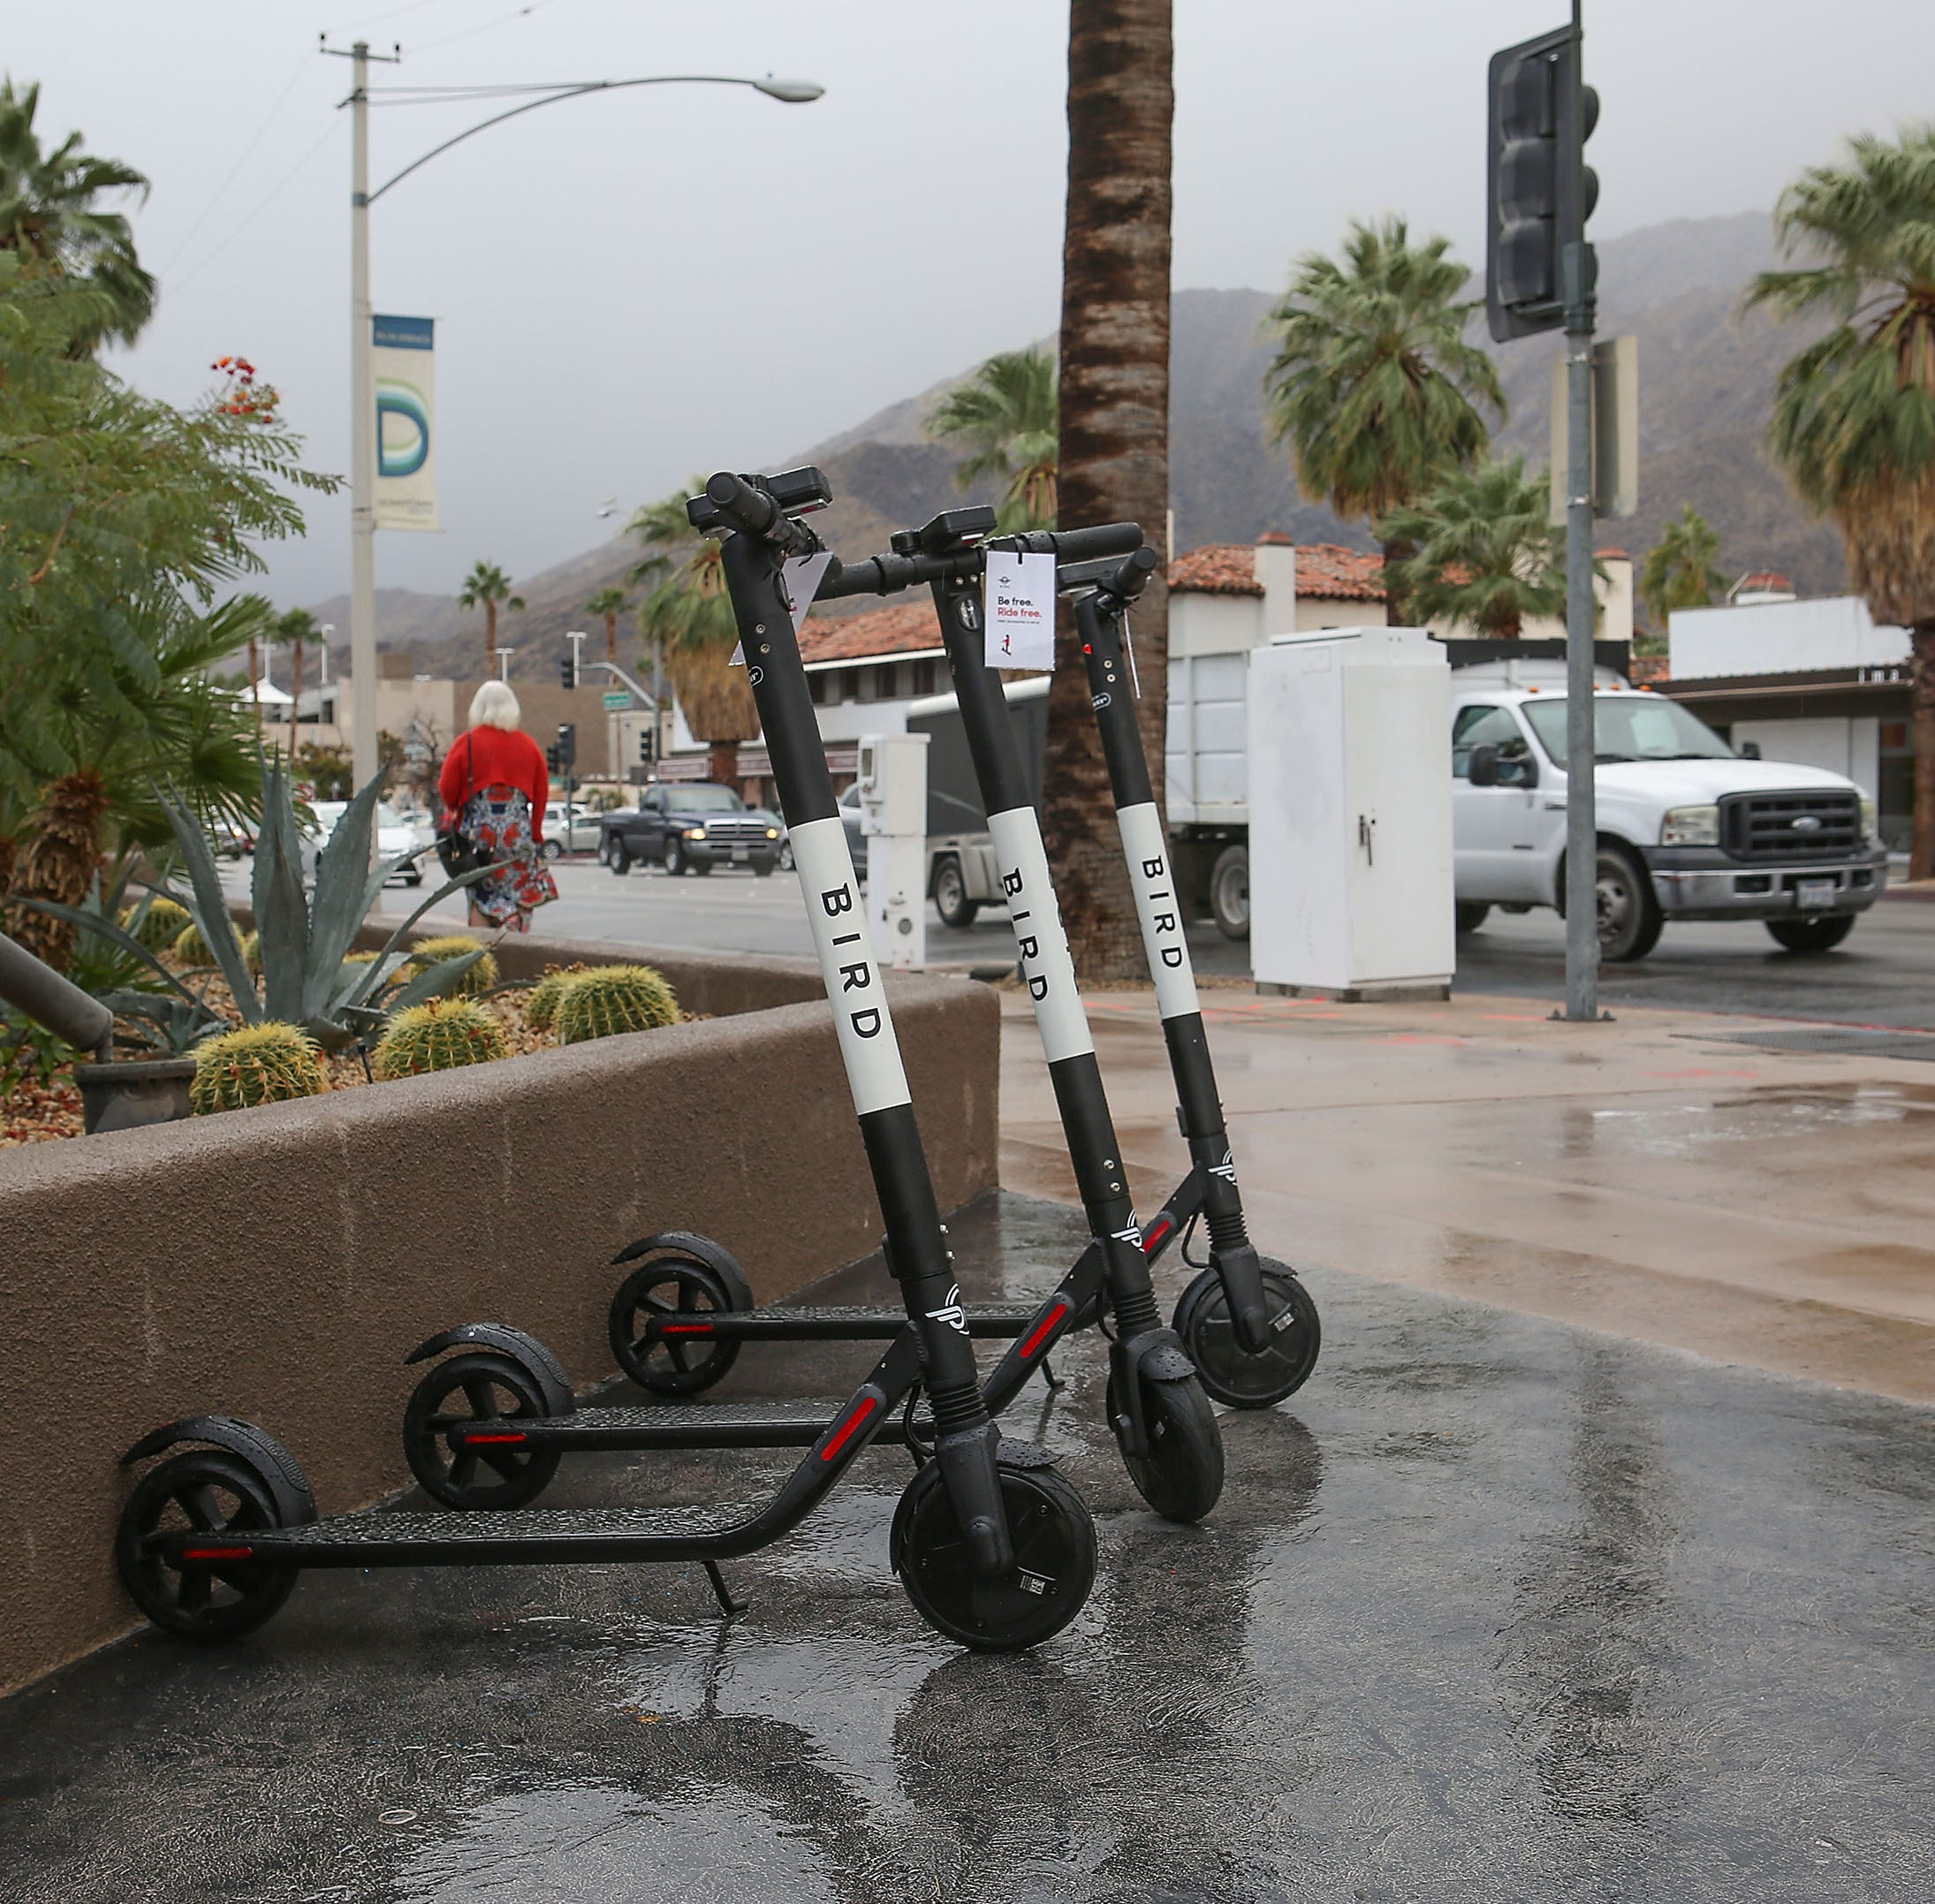 Bird scooters ruffle feathers from City Halls to California legislature